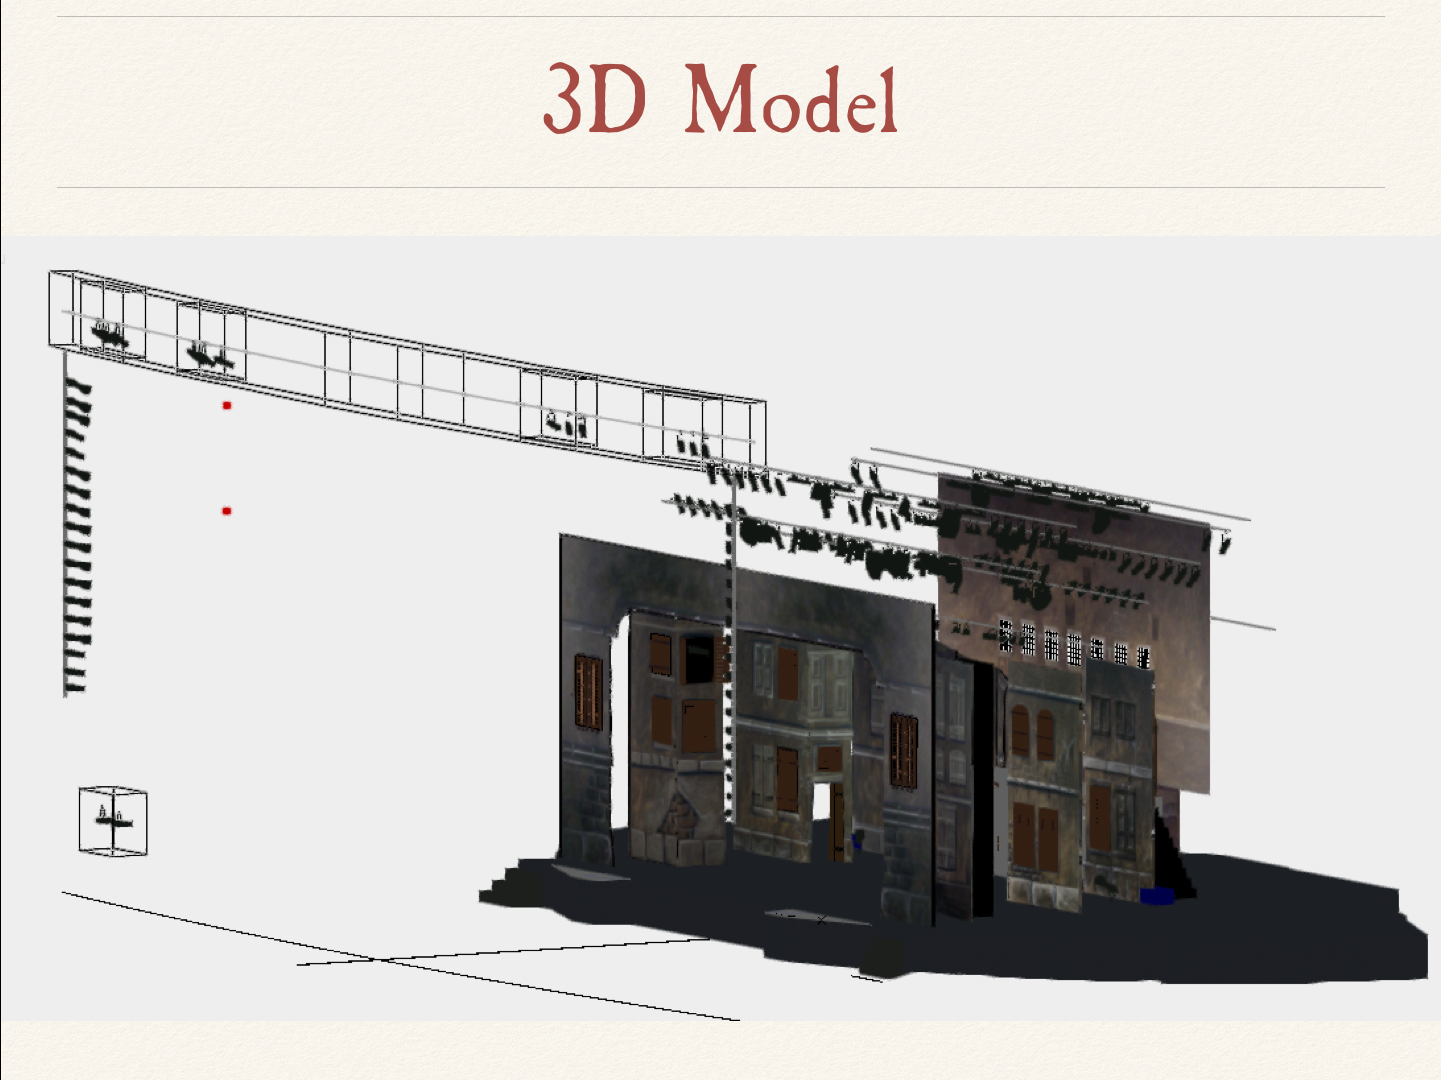 Les Misérables 3D Model